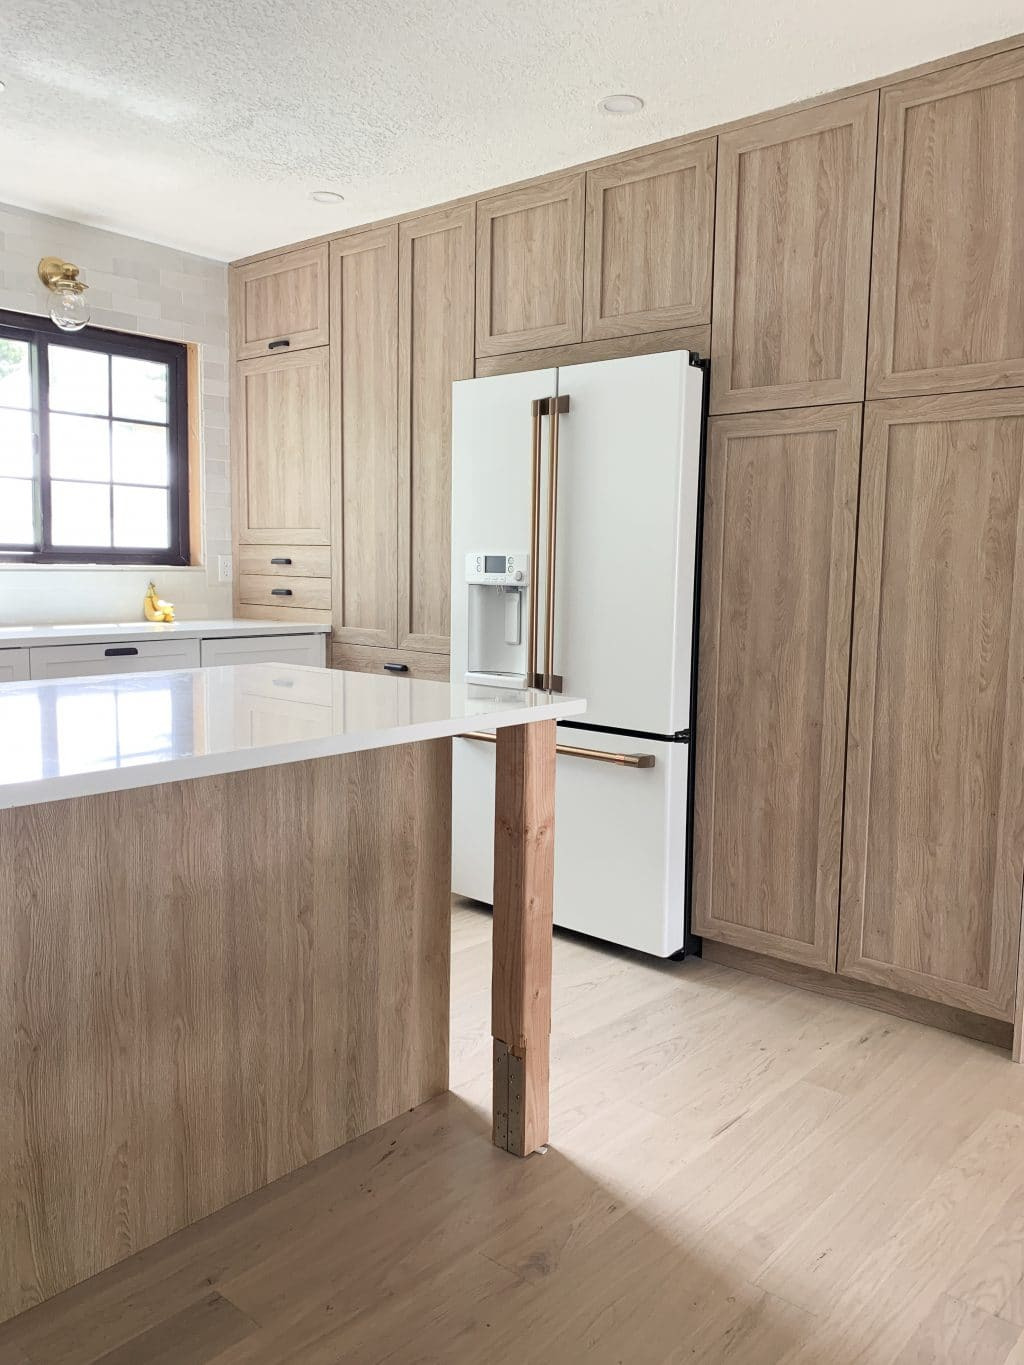 Cost Of Cabinet Doors Unique Everything You Need to Know About Using Semihandmade Fronts